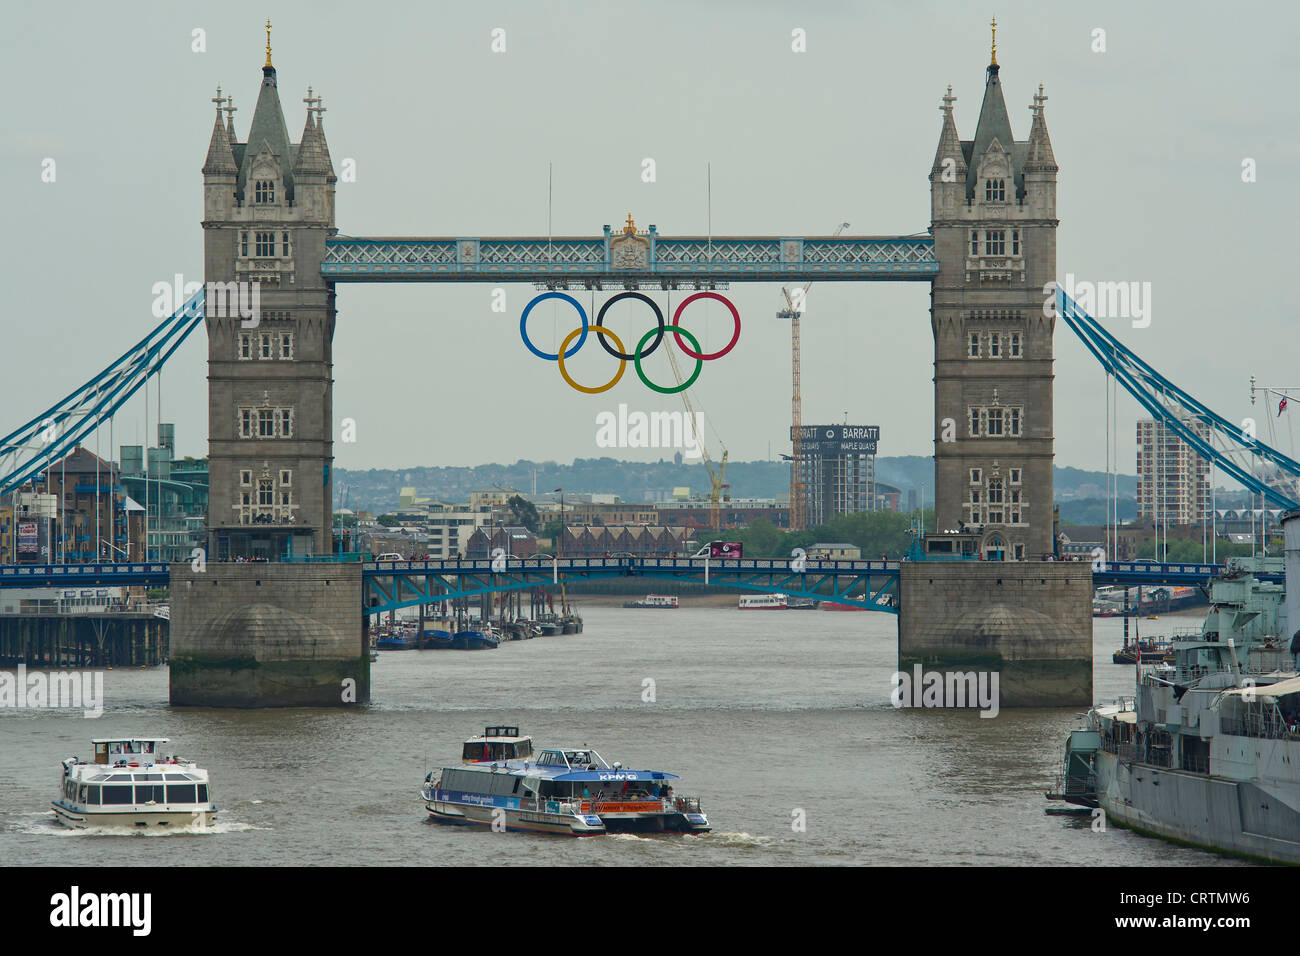 The giant Olympic Rings are unveiled on Tower Bridge, London, UK. - Stock Image